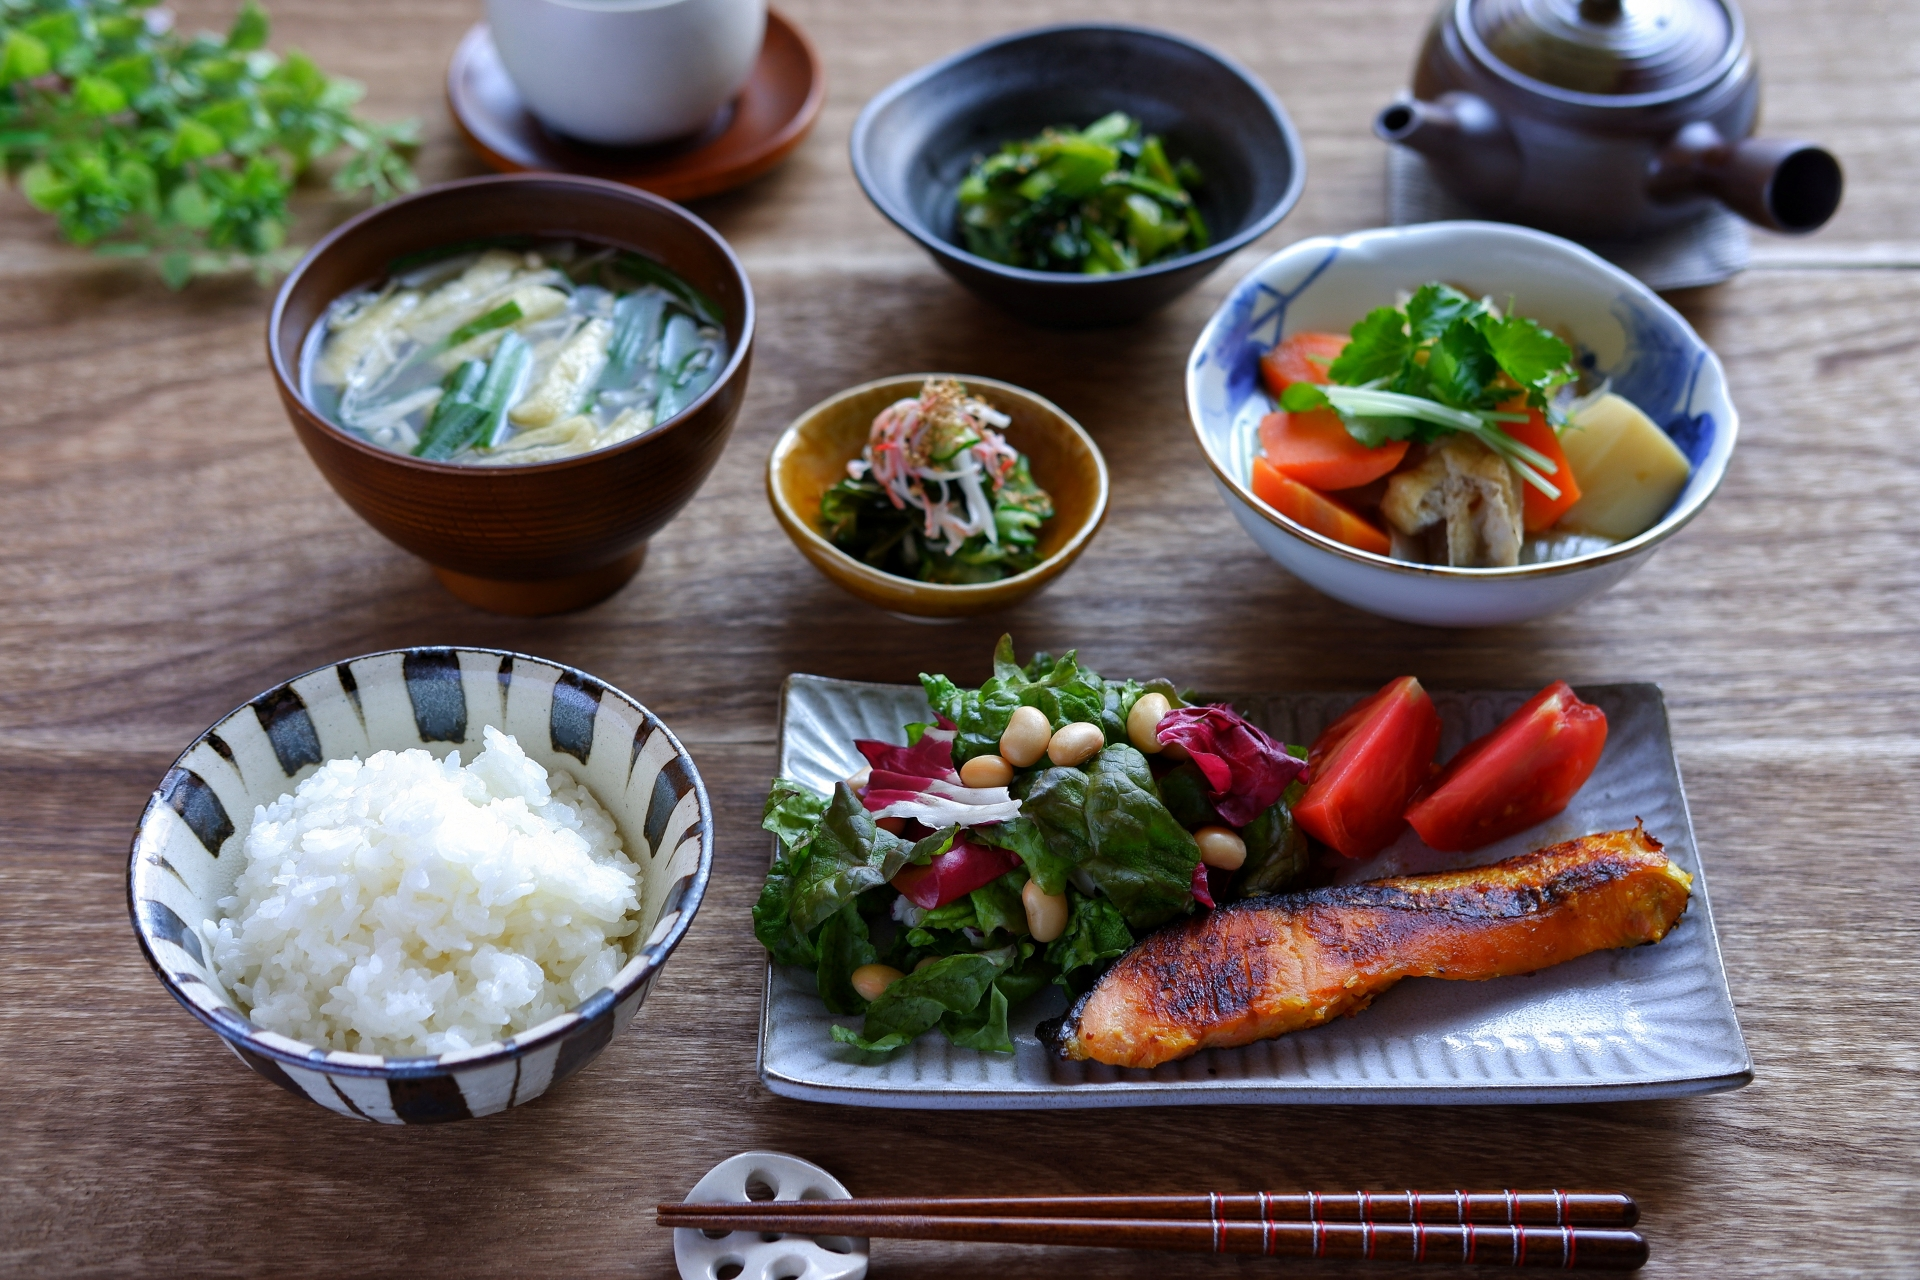 typical japanese meals at home